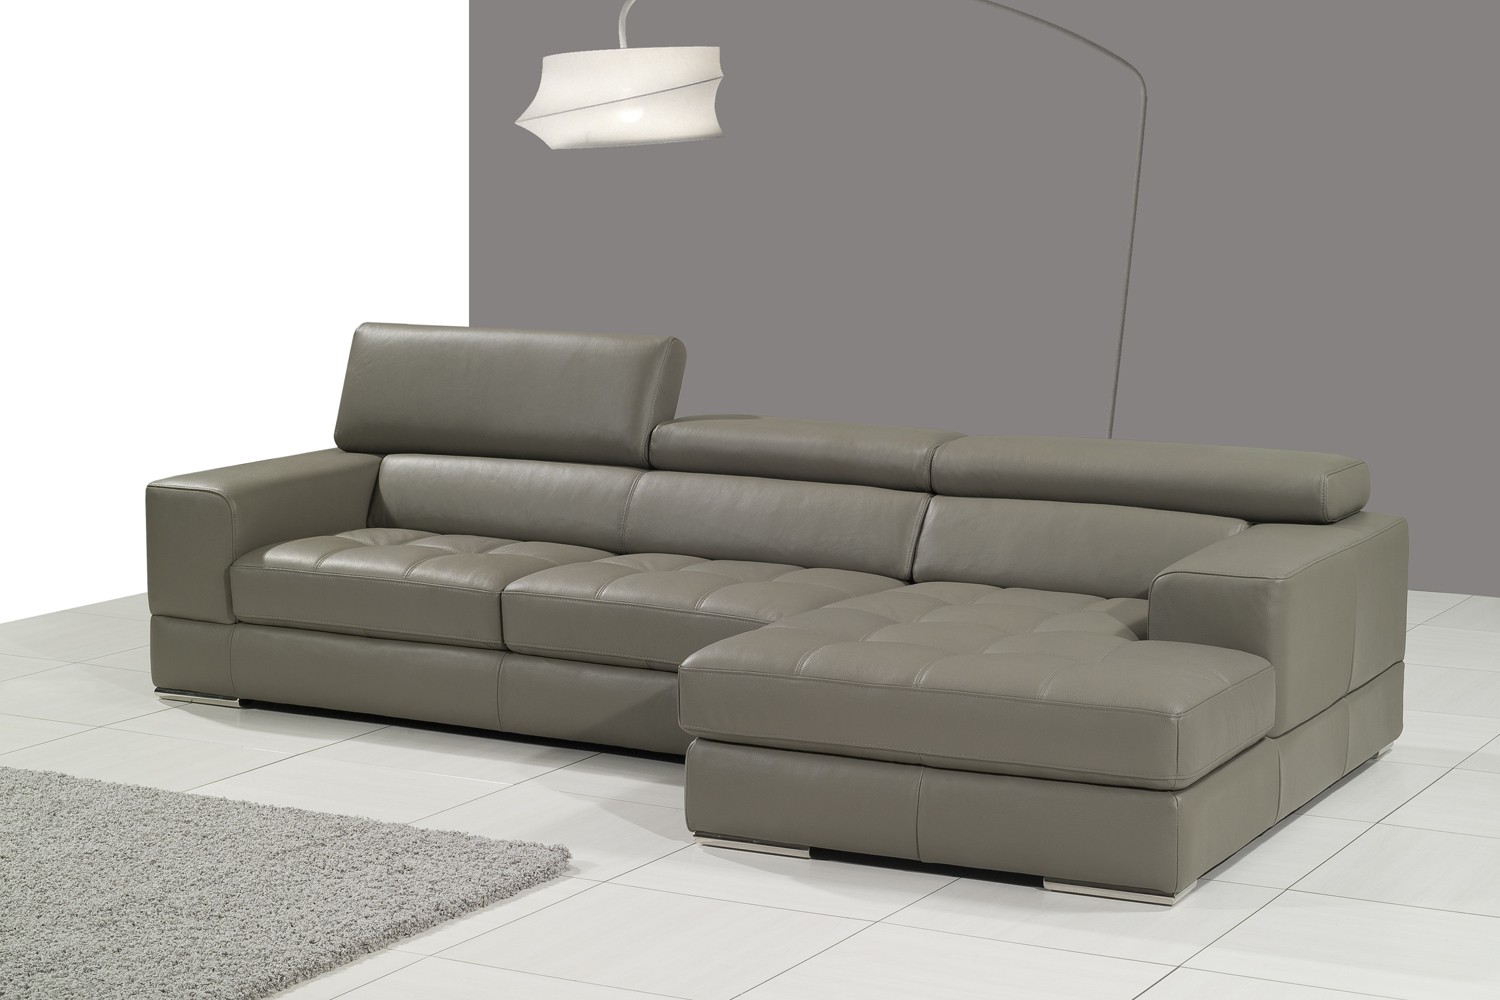 Gray Leather Sectional Couch amp Sofa Ideas Interior